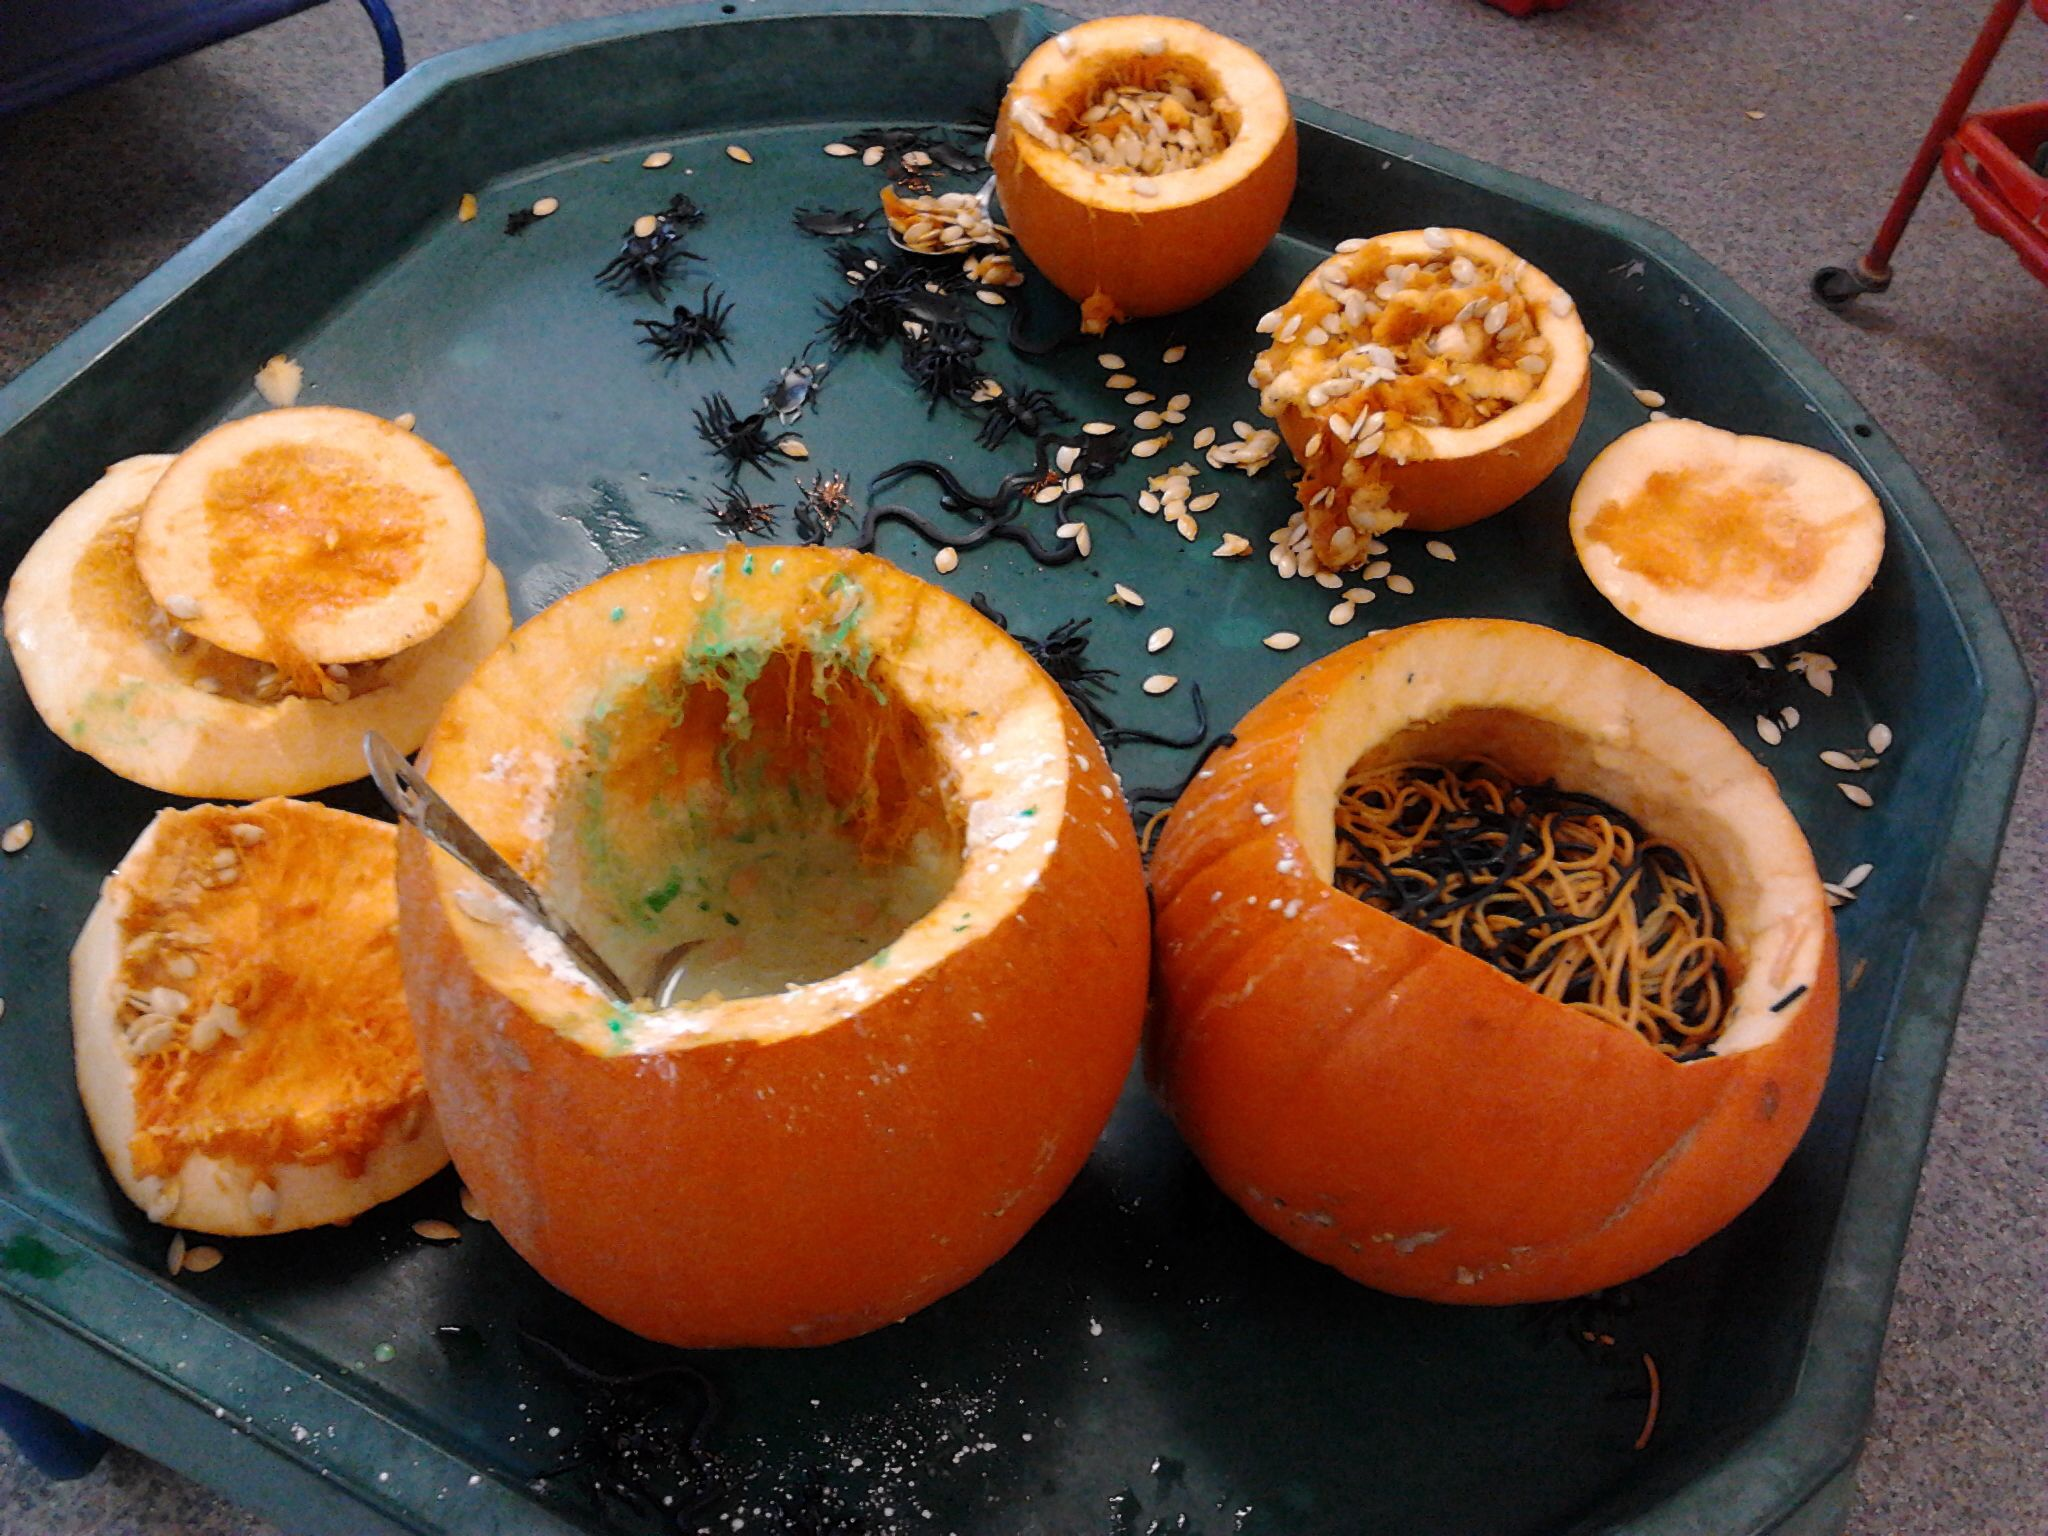 Pumpkin Filled Messy Play With Spiders Worms And Green